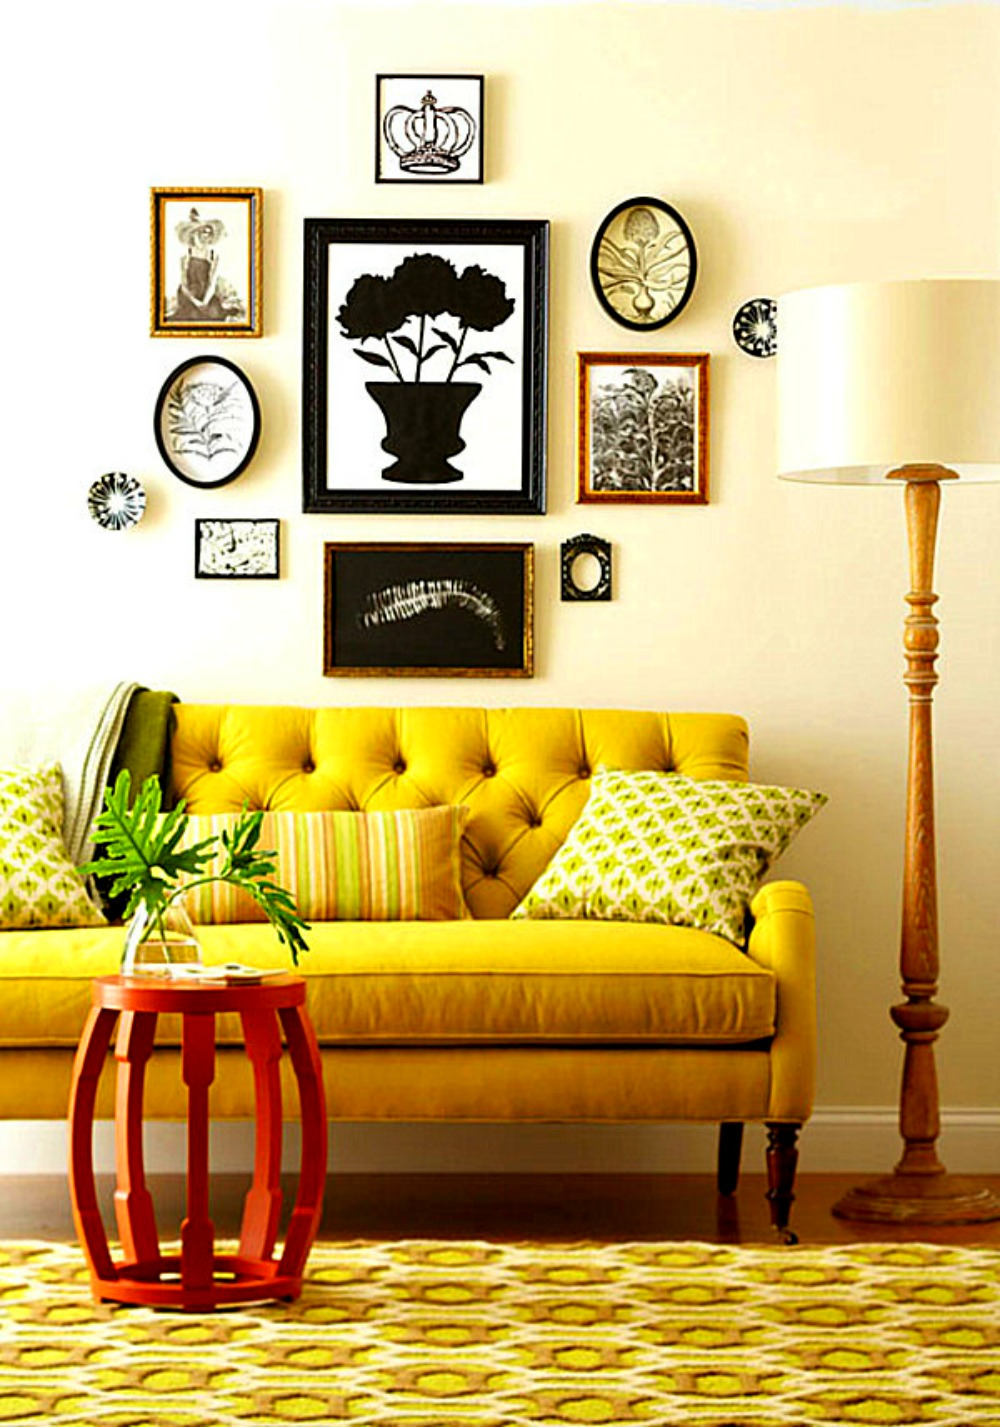 rustic-couch-mustard-yellow-living-room-decor